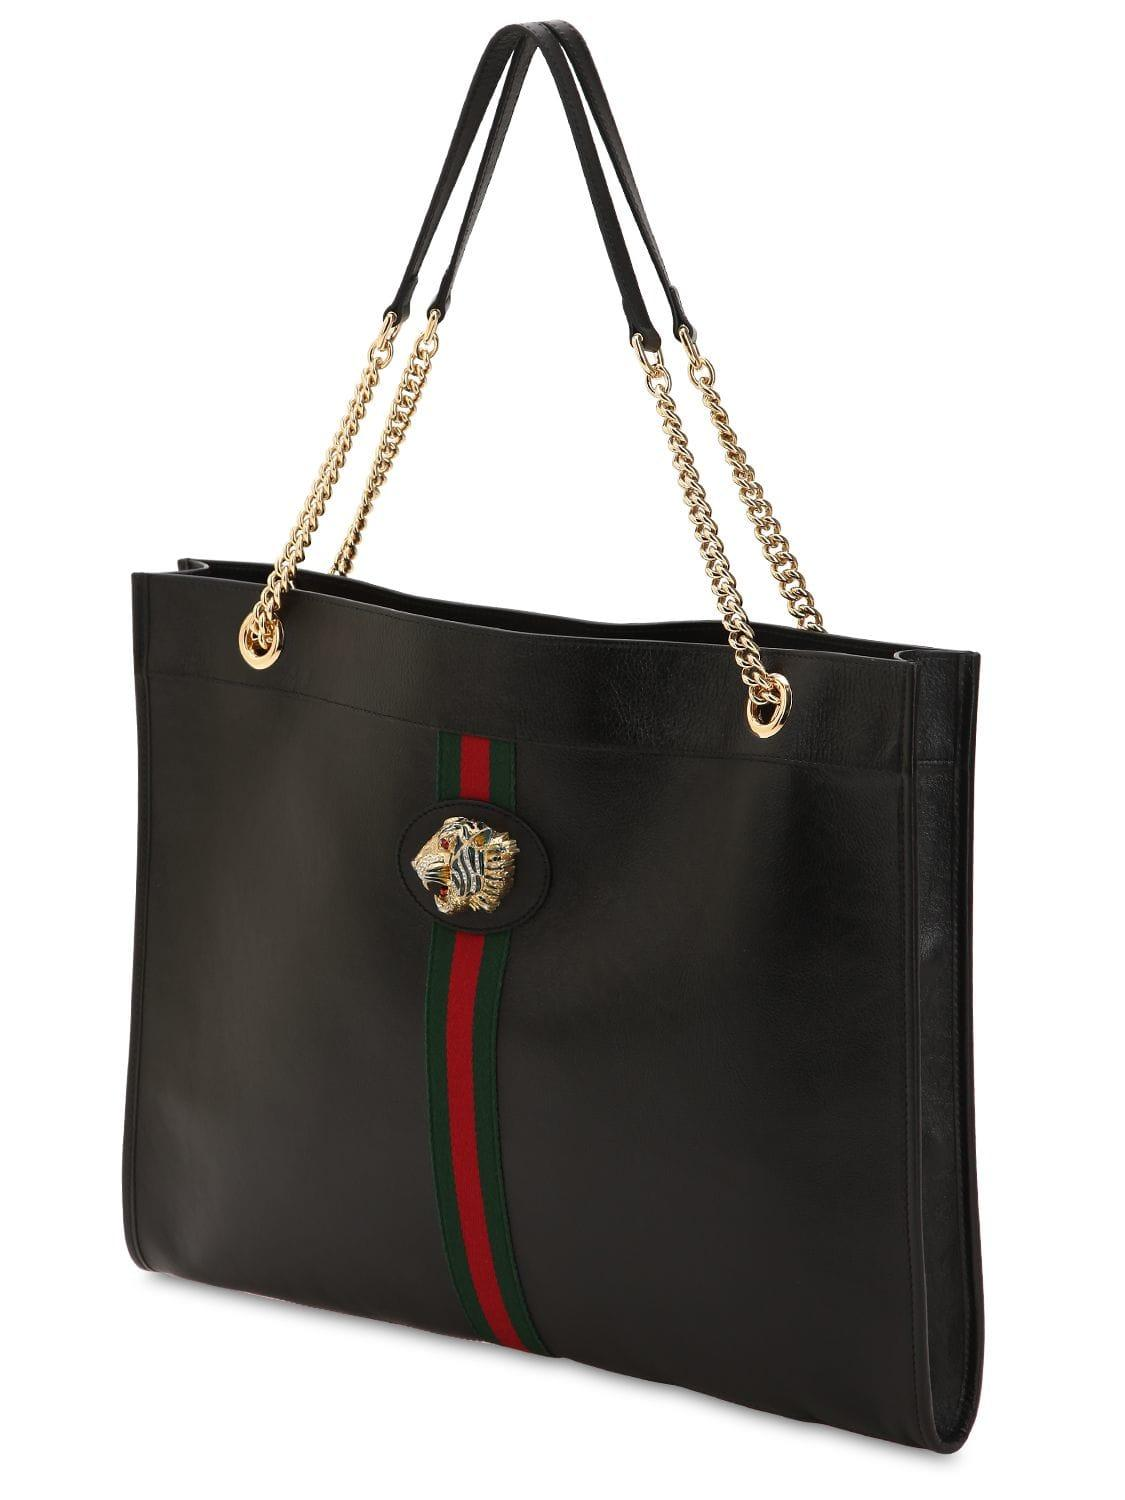 4bacef4978067 Gucci Large Rajah Leather Tote Bag in Black - Lyst